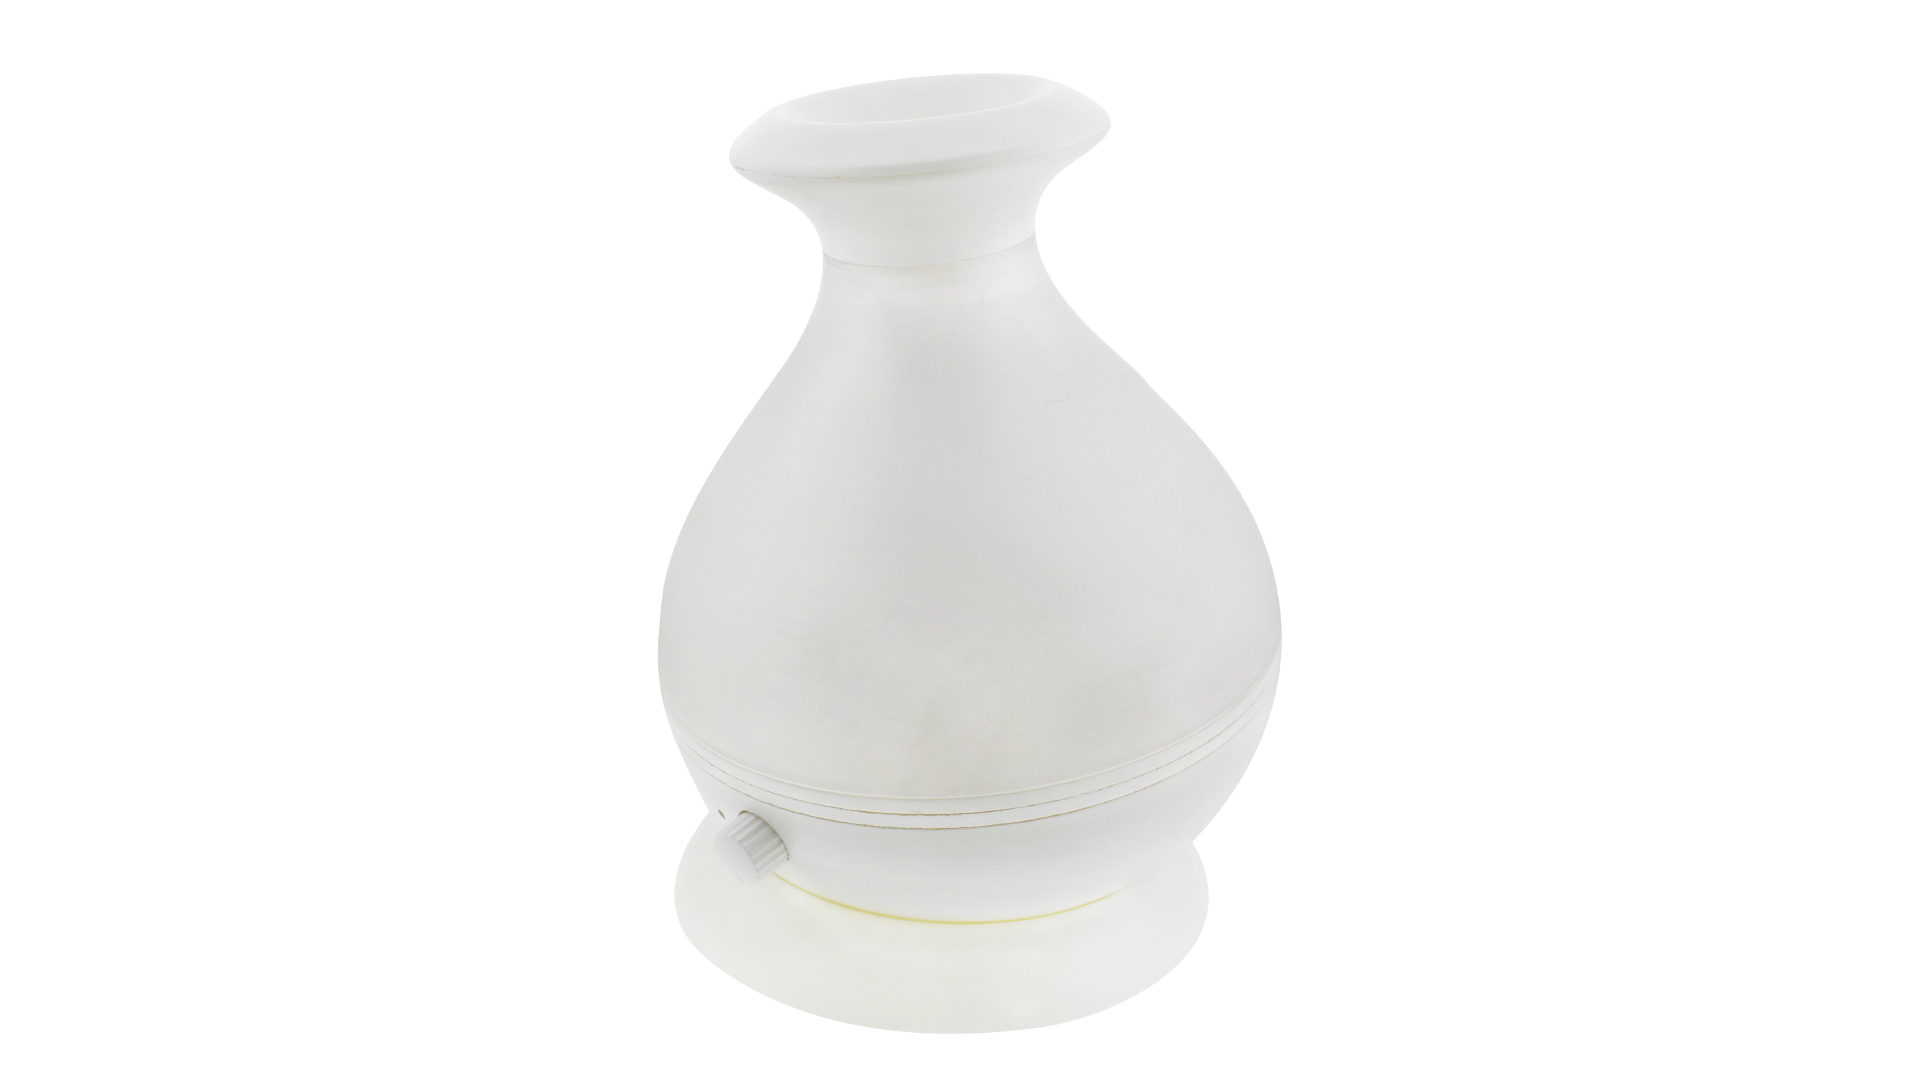 Mini Humidifier OEM ODM Manufacturer China Factory